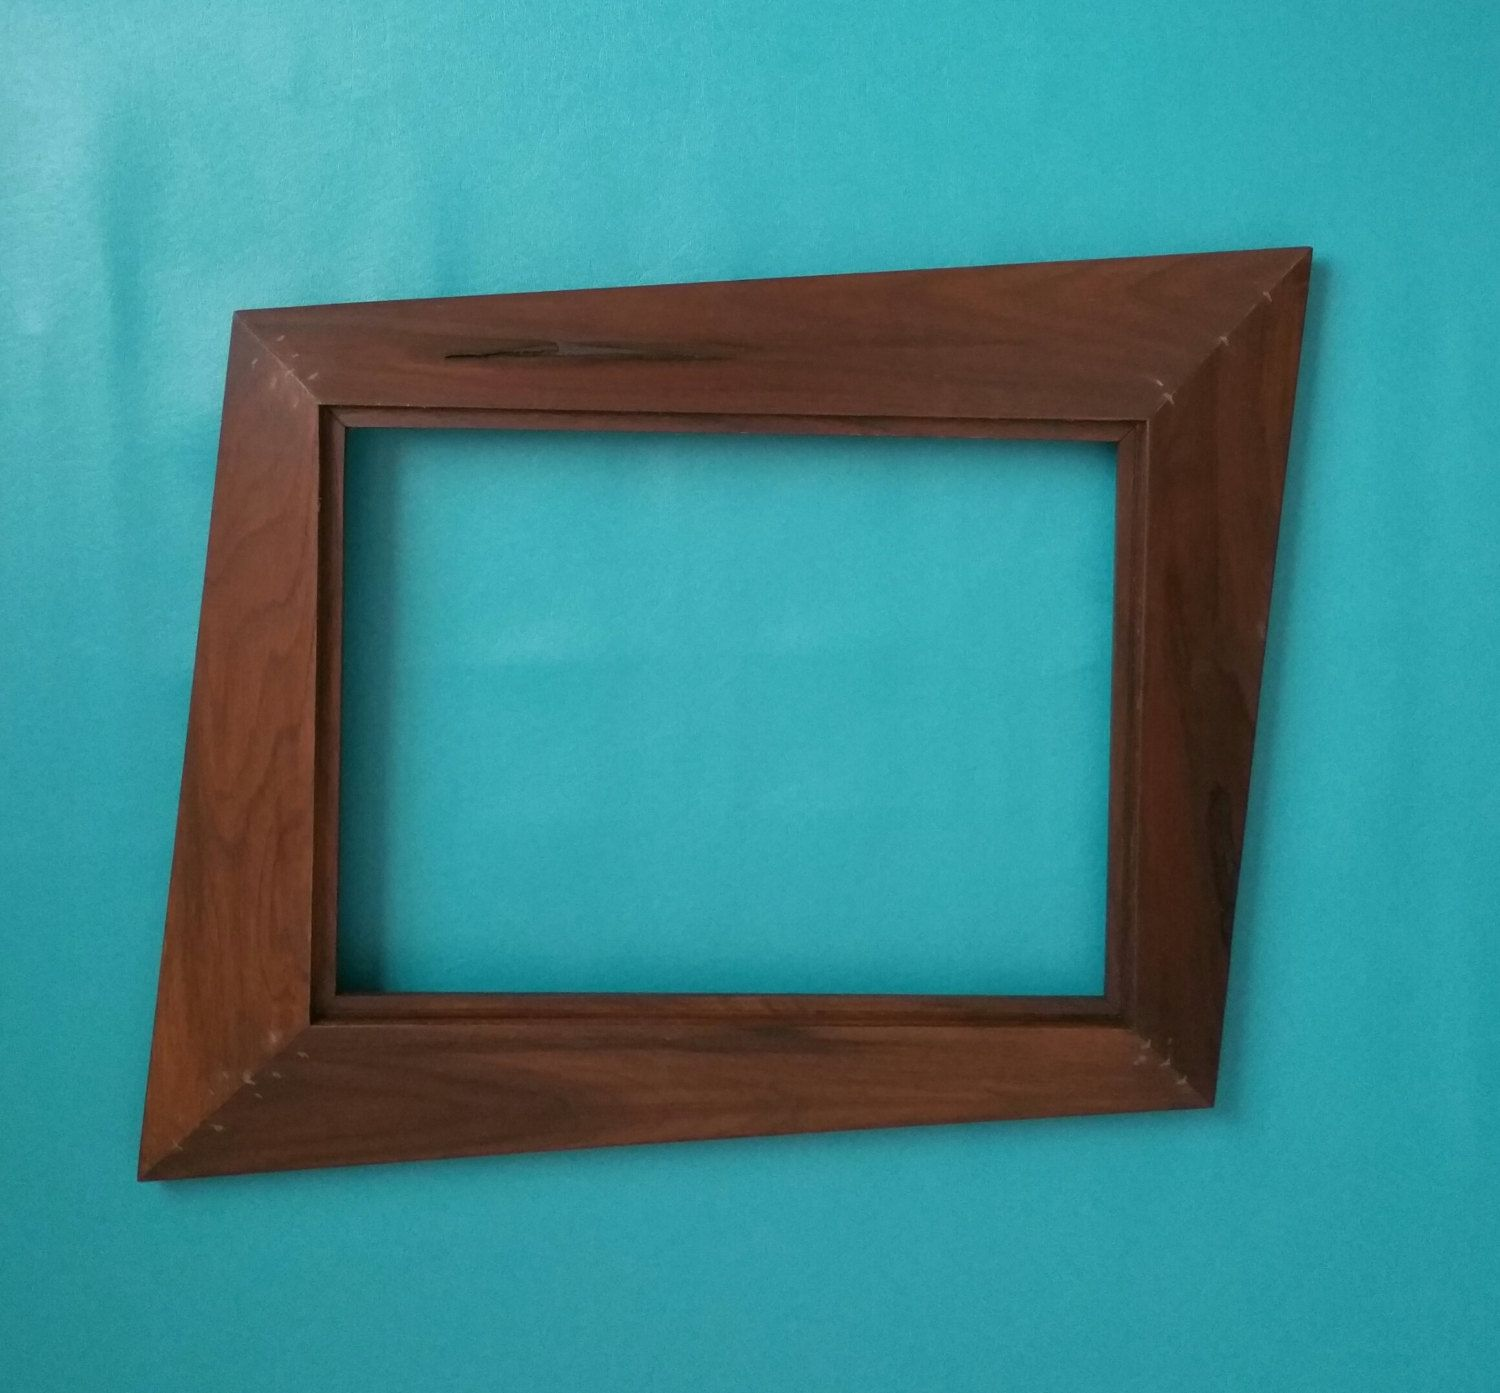 forced perspective trapezoid picture frame mid century mirror frames by antiquatedrevolution on etsy - Mid Century Picture Frames